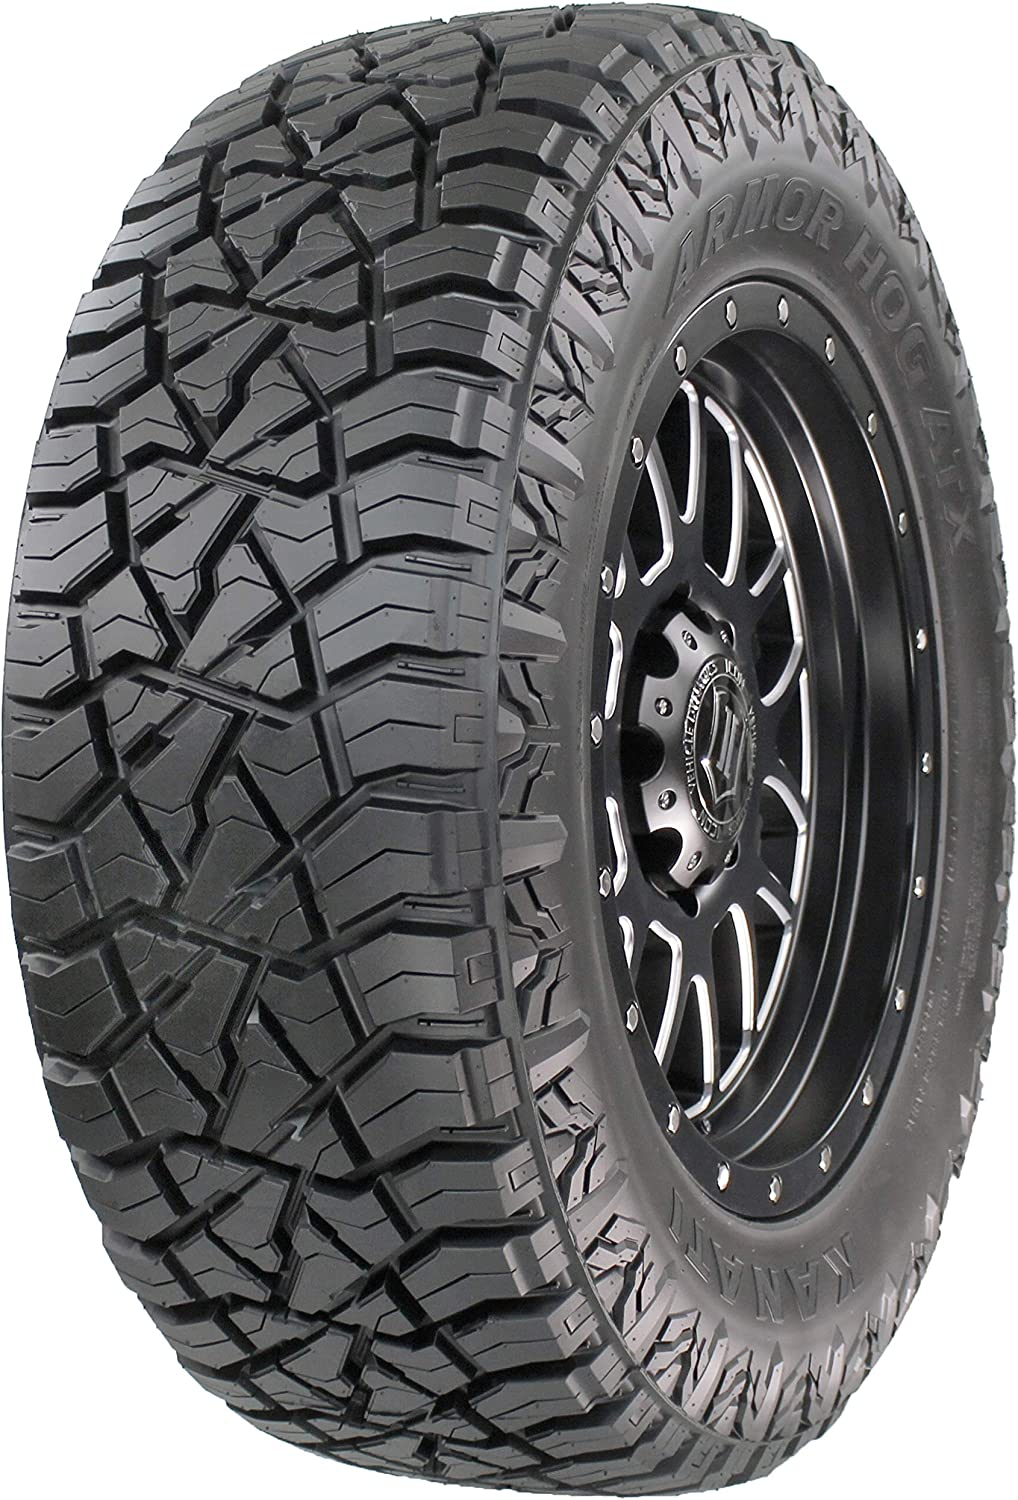 KANATI ARMOR HOG ATX LT285 70R17 ALL-STEEL 12-PLY Max 62% OFF RATED Large discharge sale LRF 129Q